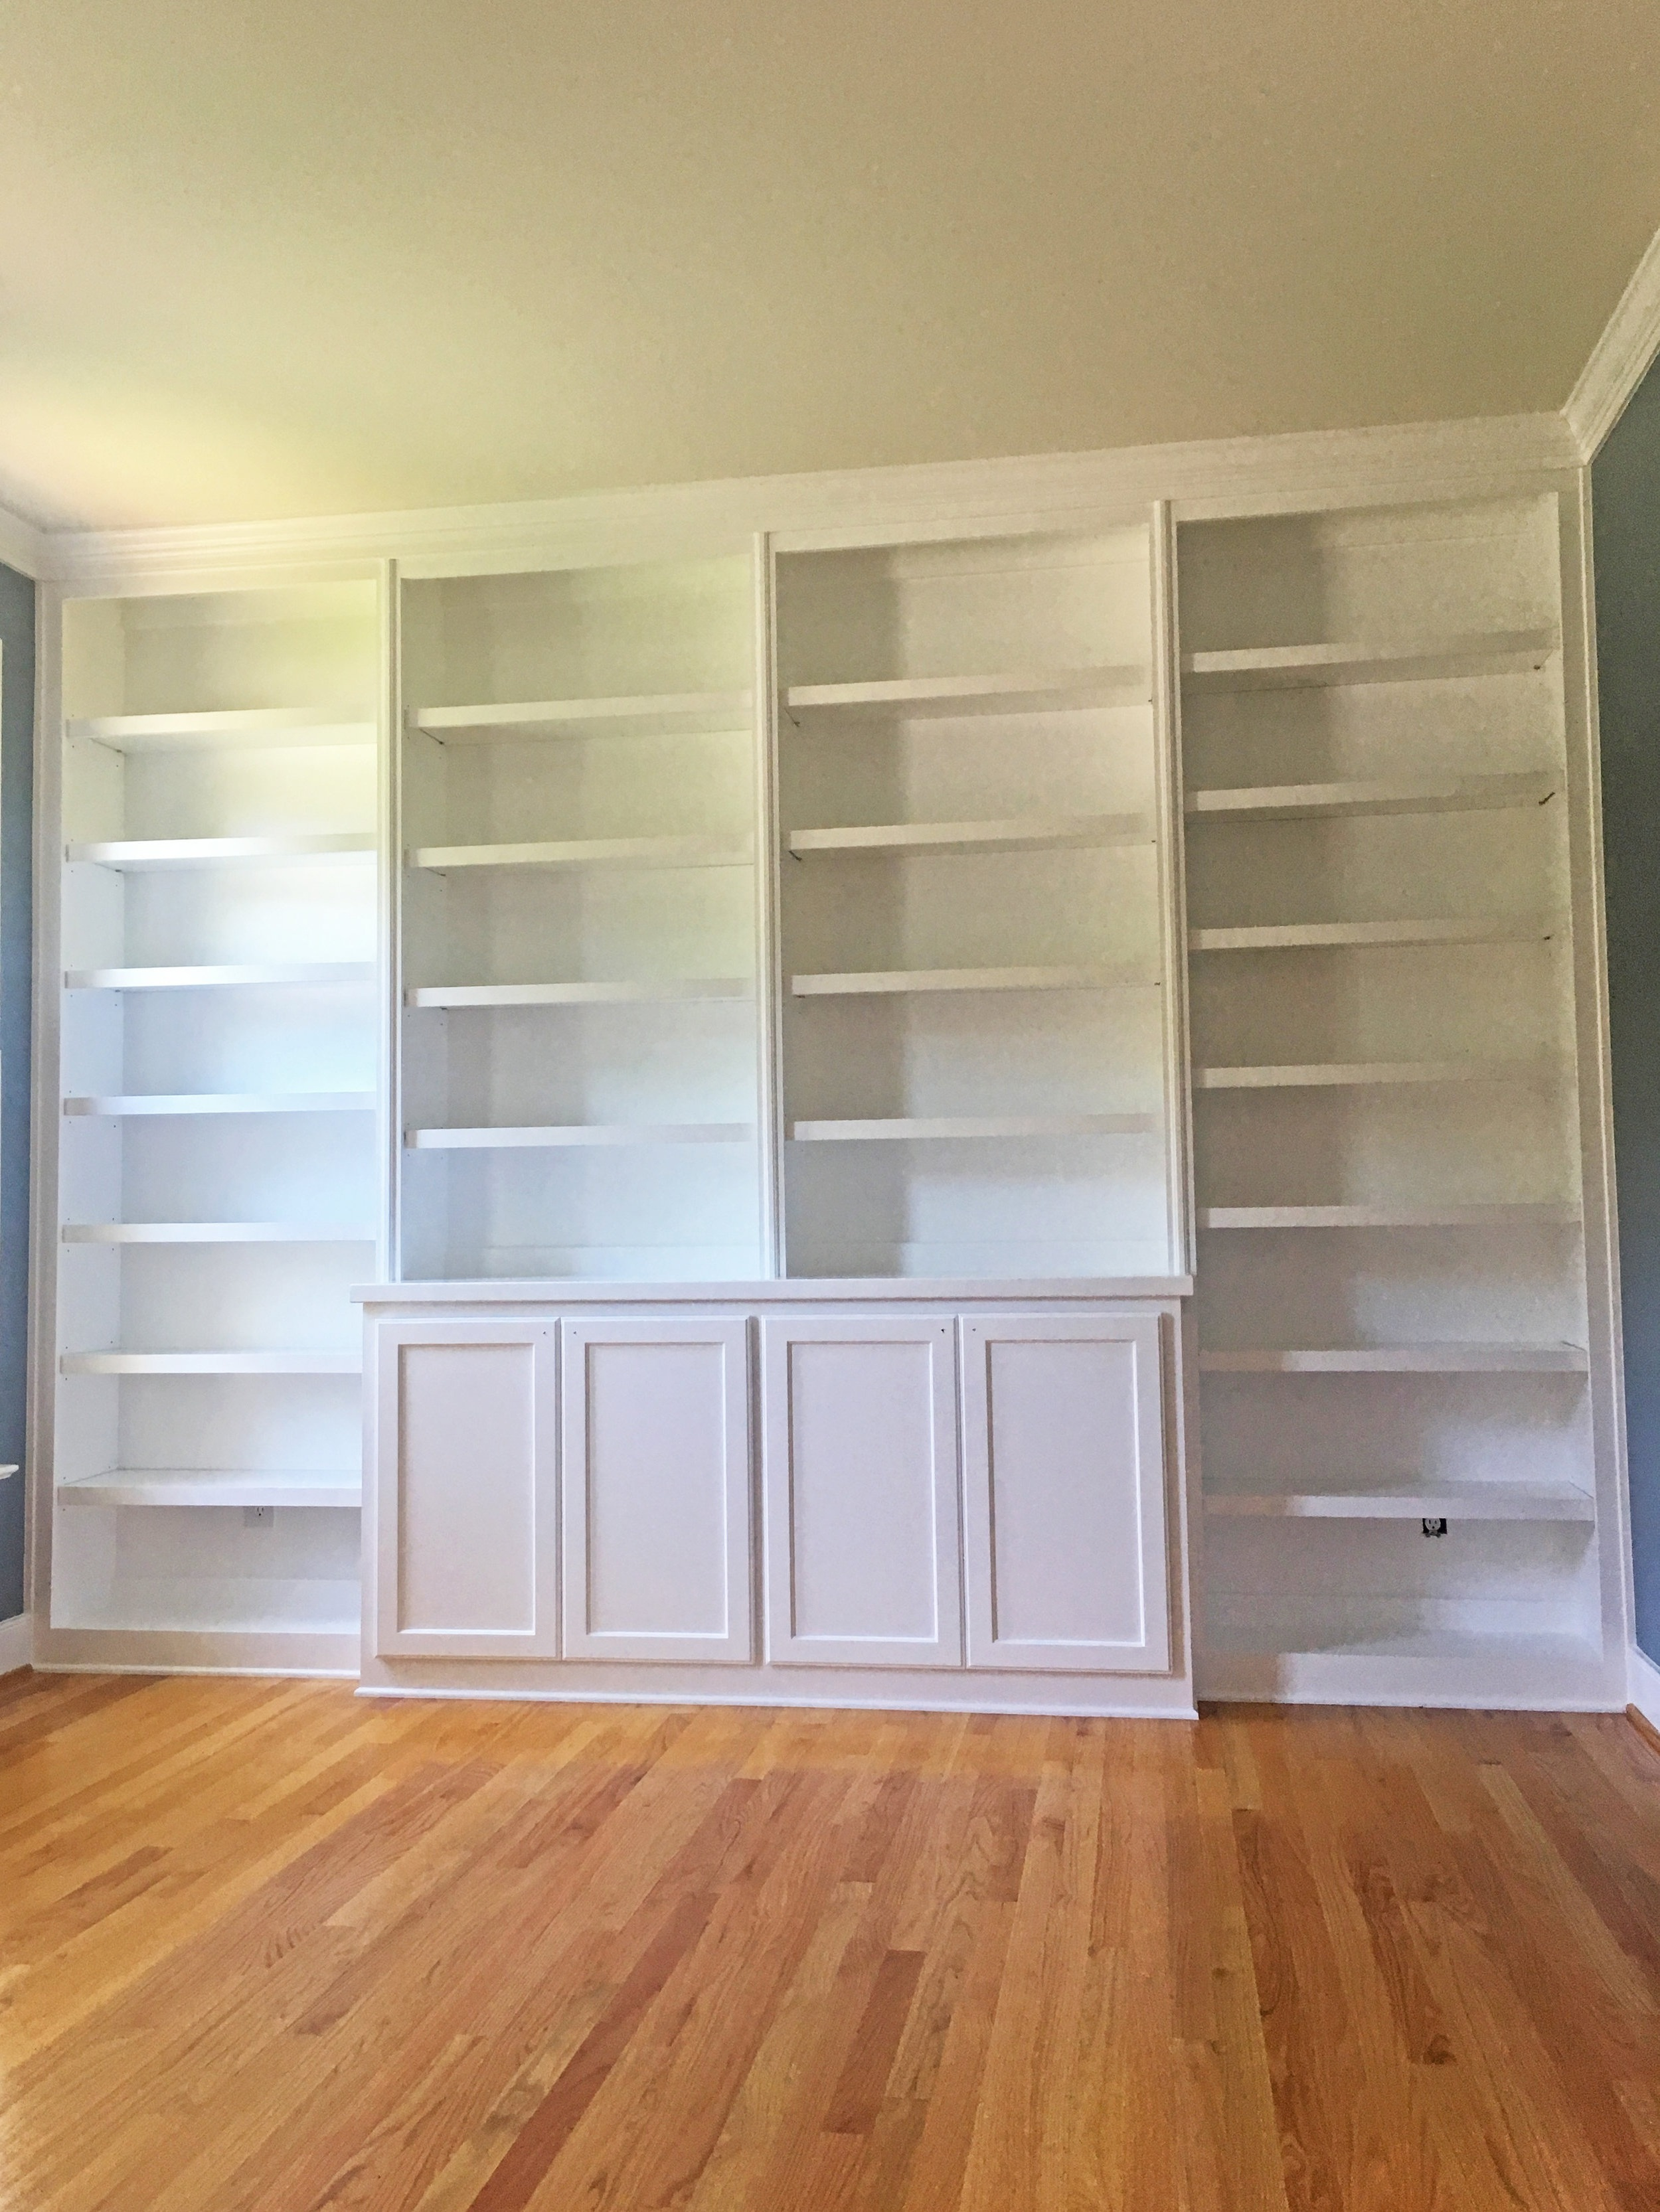 Built-In with Bookcases, Shaker Doors, Adjustable Shelves, and Crown